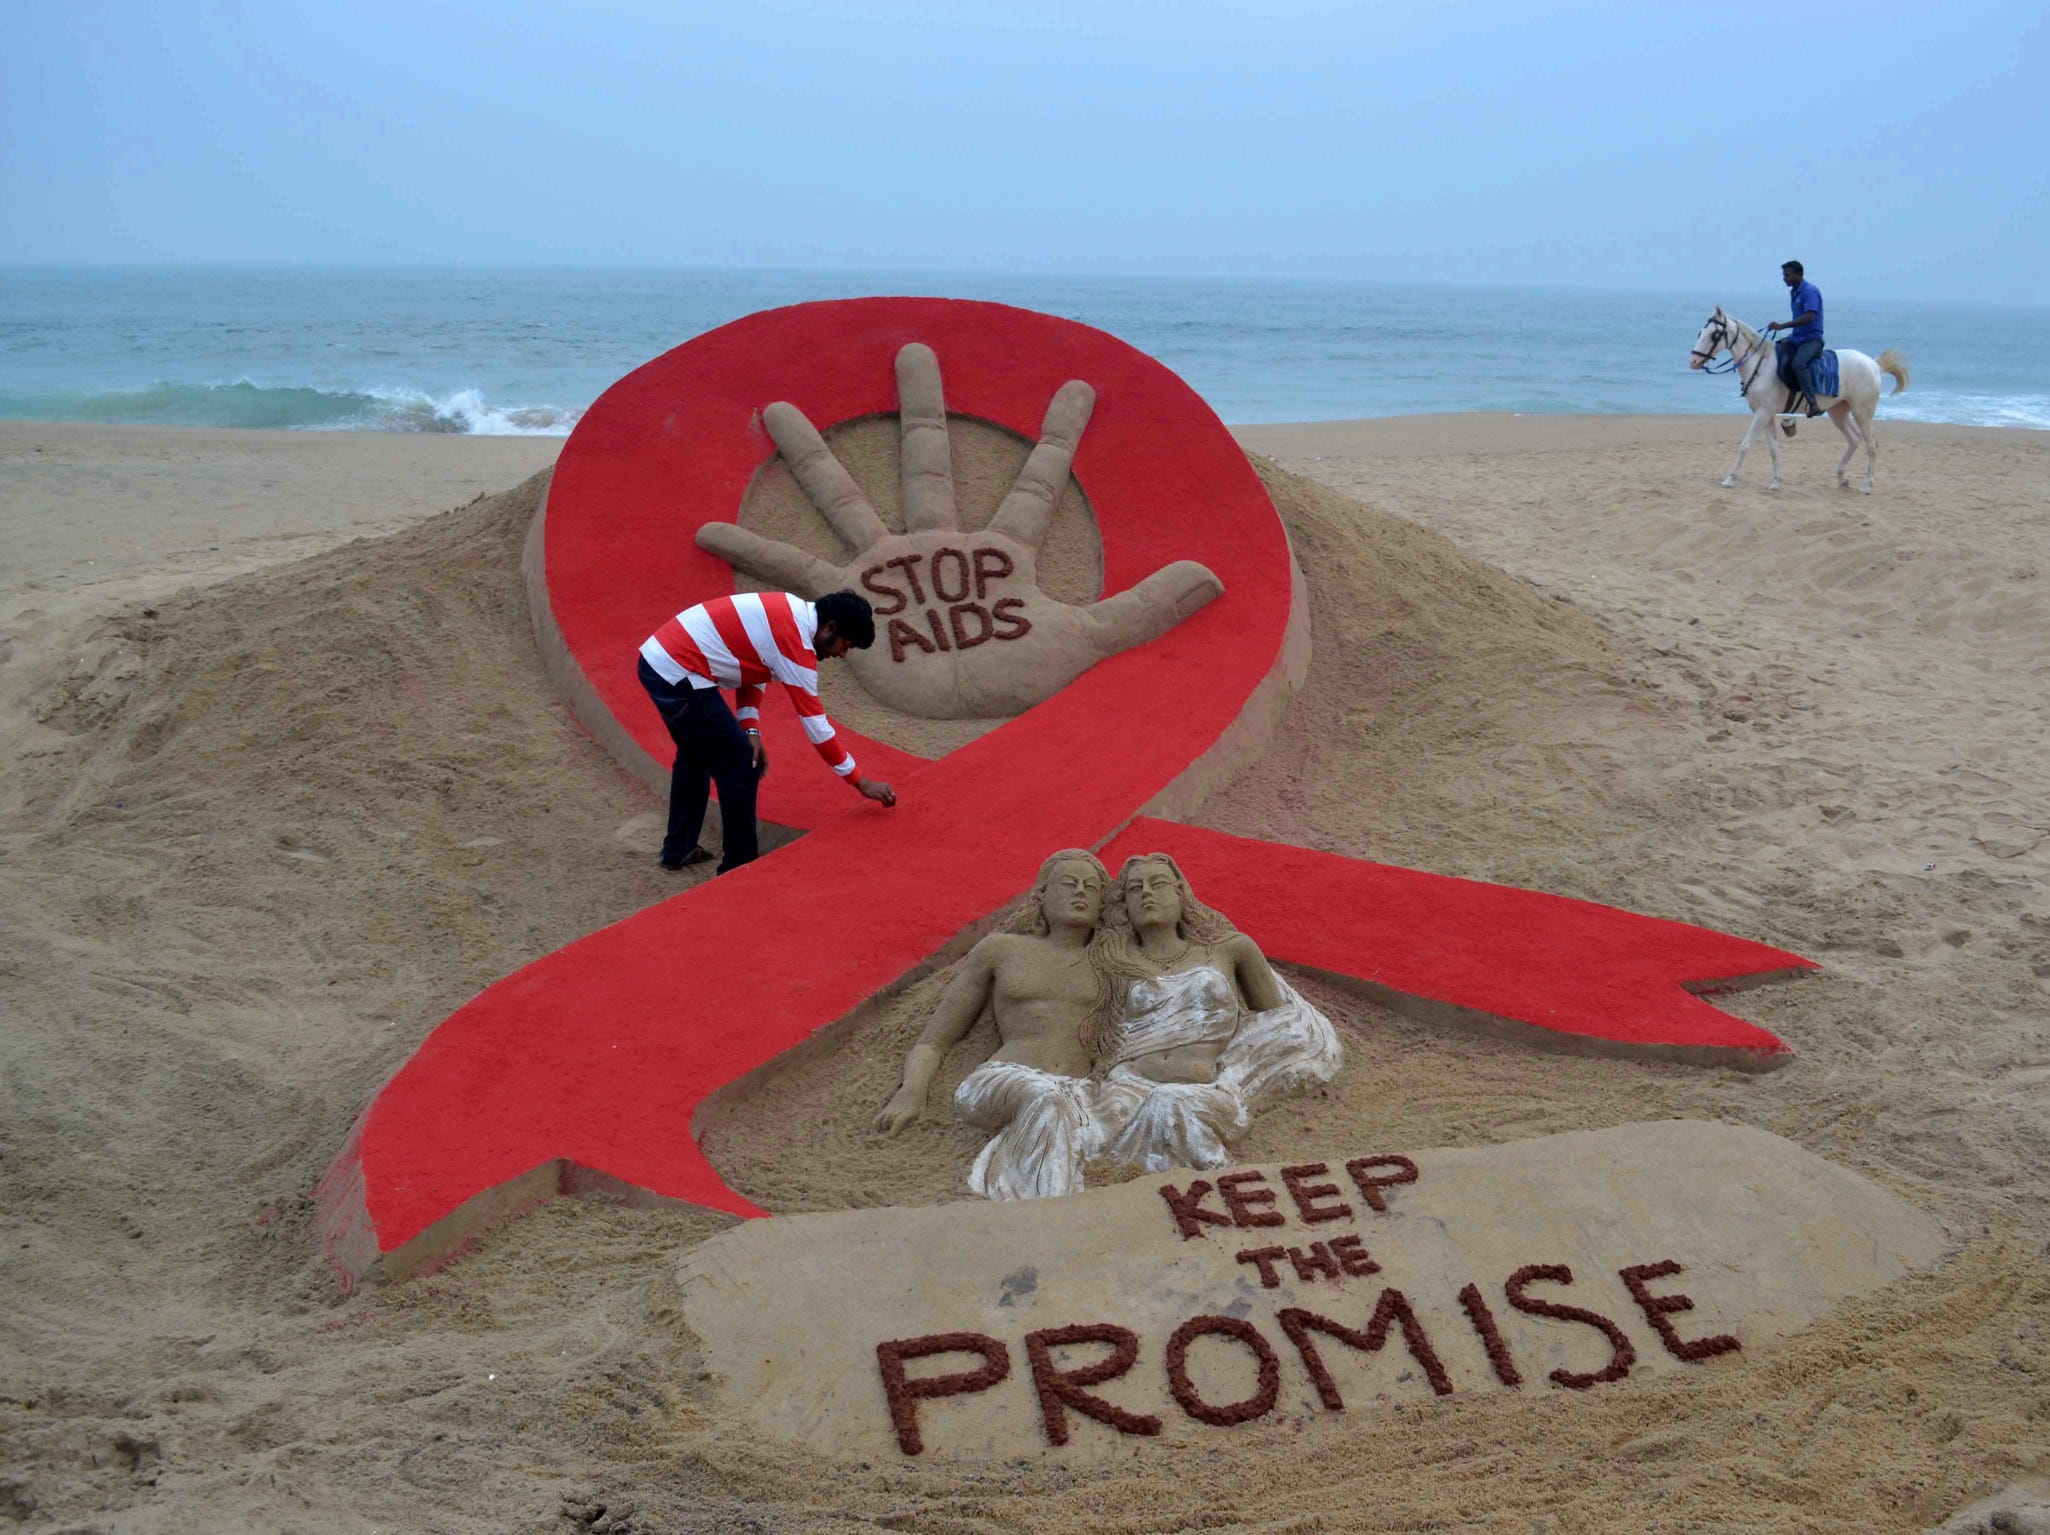 Indian sandartist Sudersan Pattnaik gives the final touches to a sand sculpture on the eve of World AIDS Day, as a horseman rides by on Golden Sea Beach in Puri.